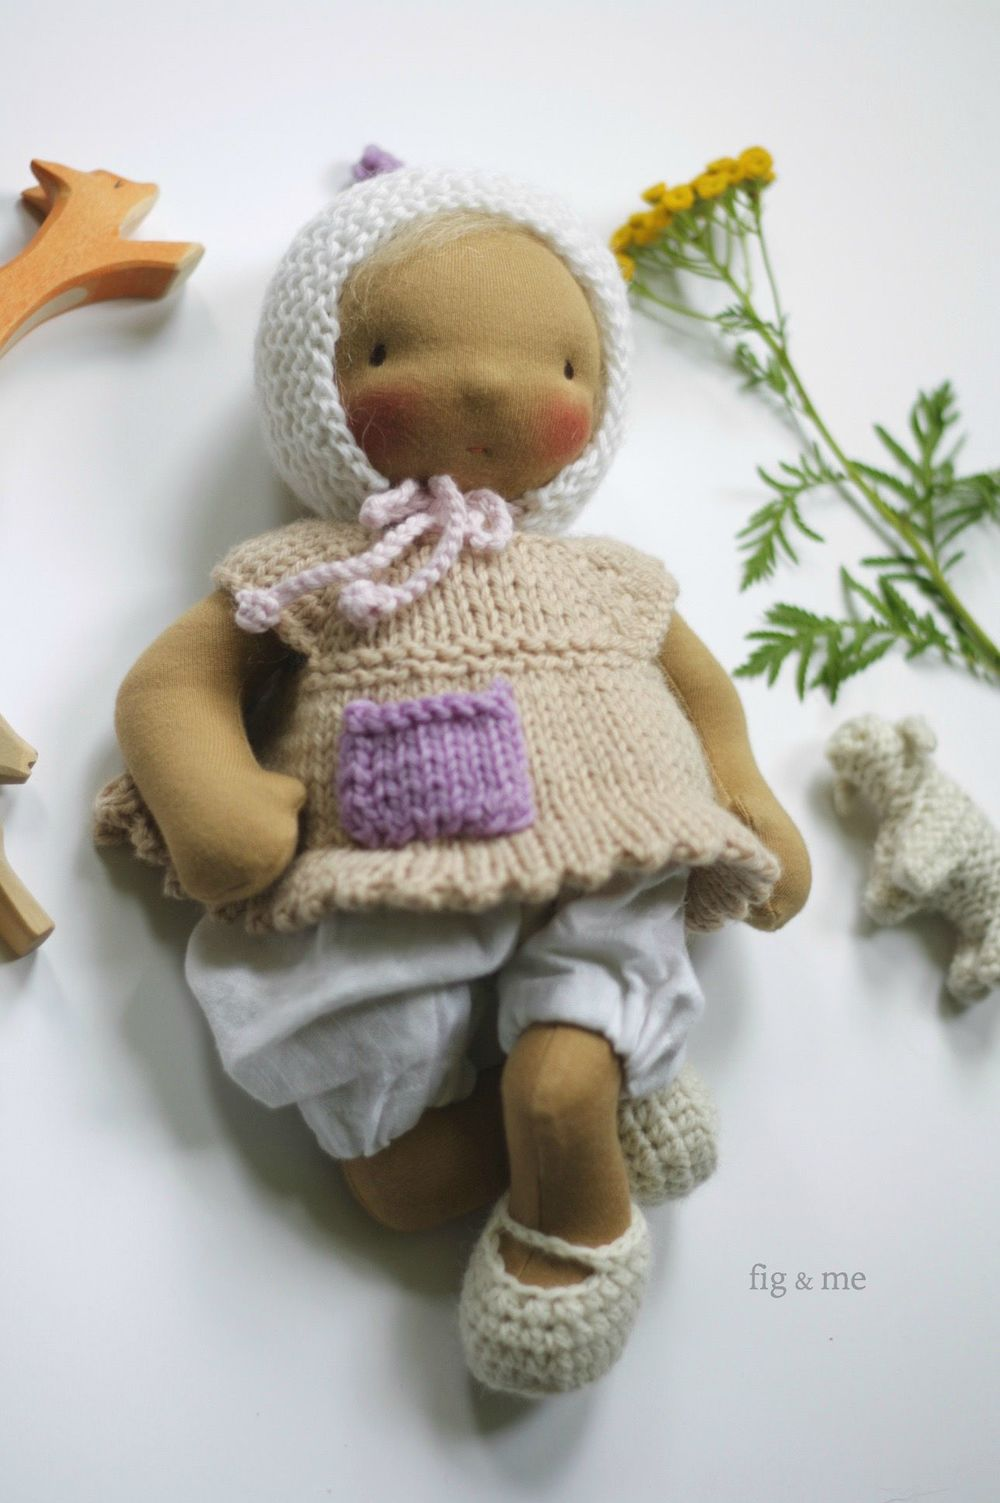 Baby Ethel by Fig and me